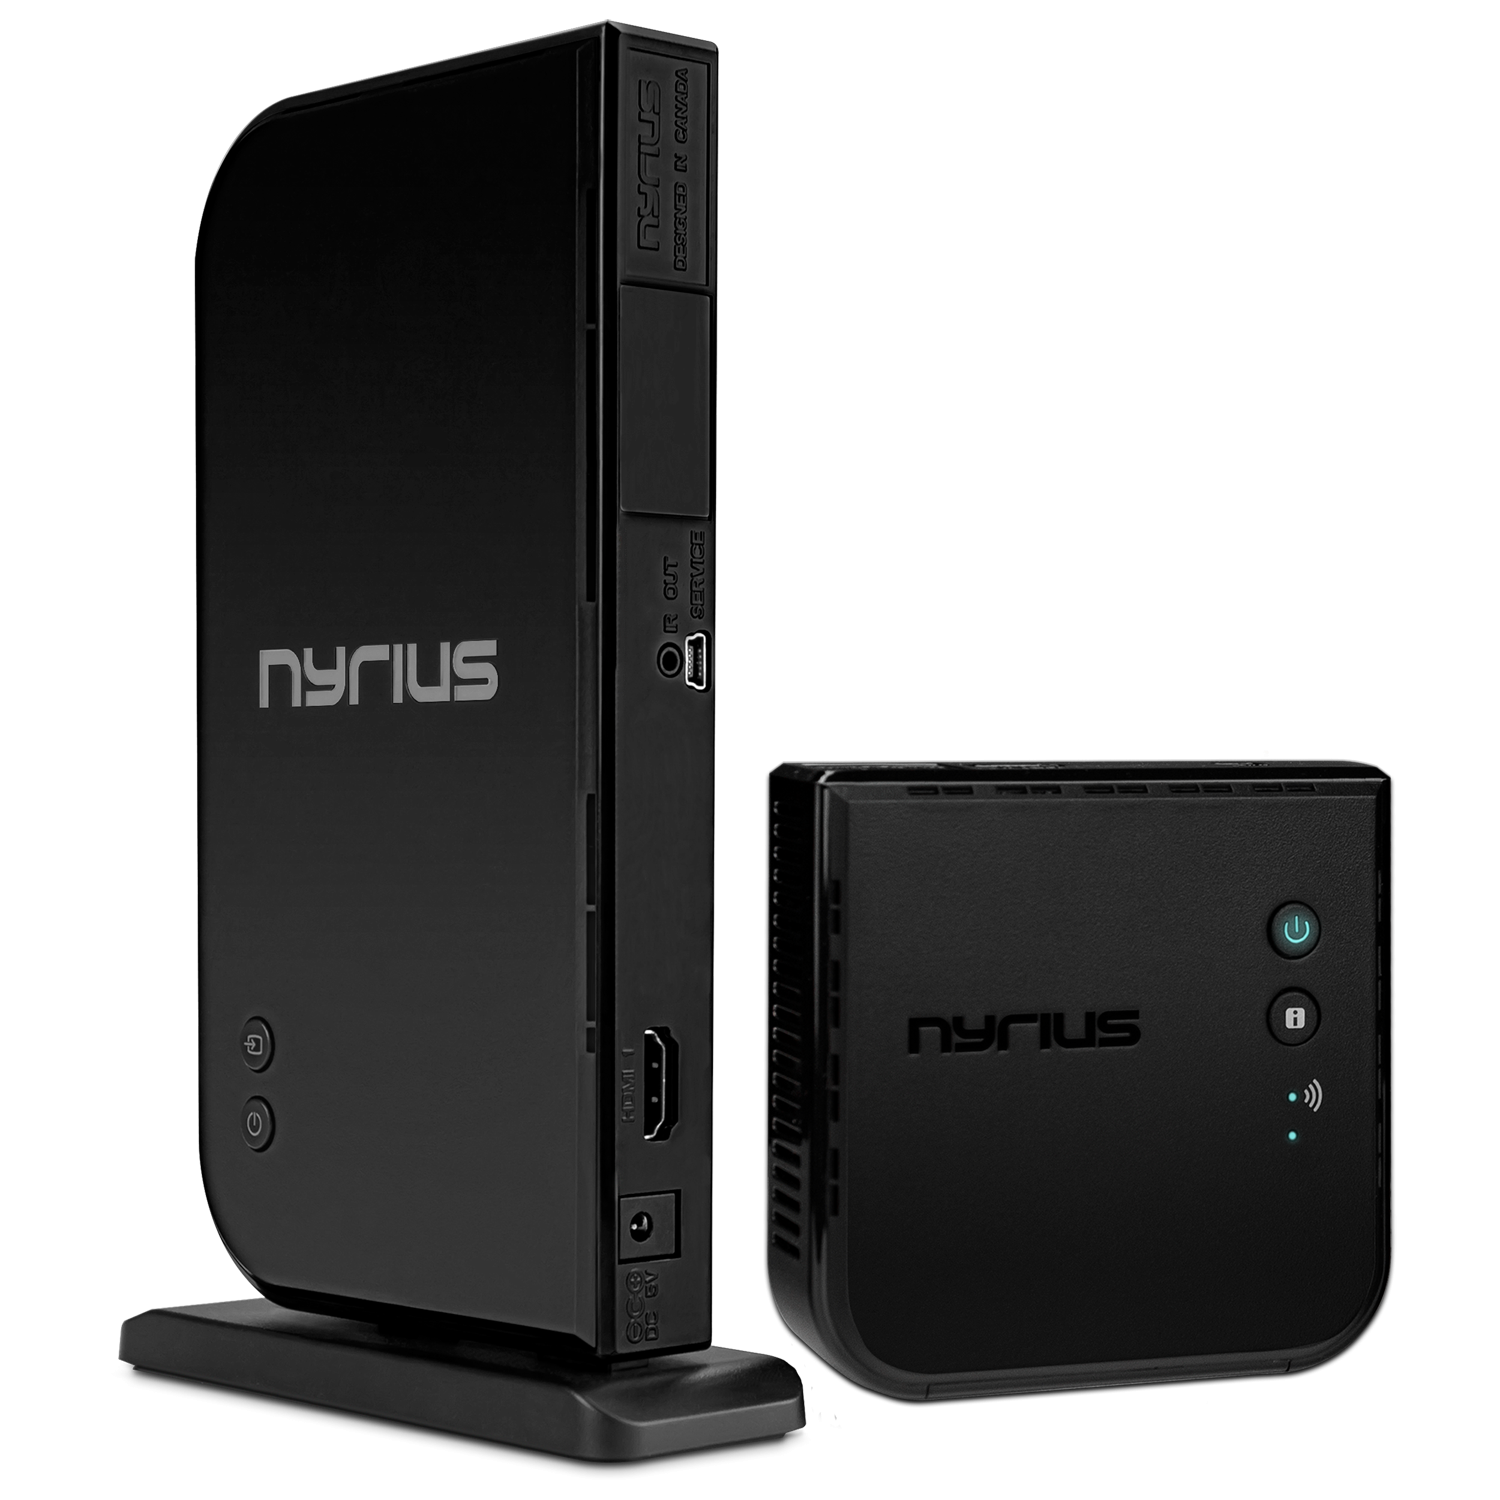 Navs500 Aries Home Wireless Hd Digital Transmitter Receiver Nyrius If You Want The Infrared That Has Signal Strength Is Video